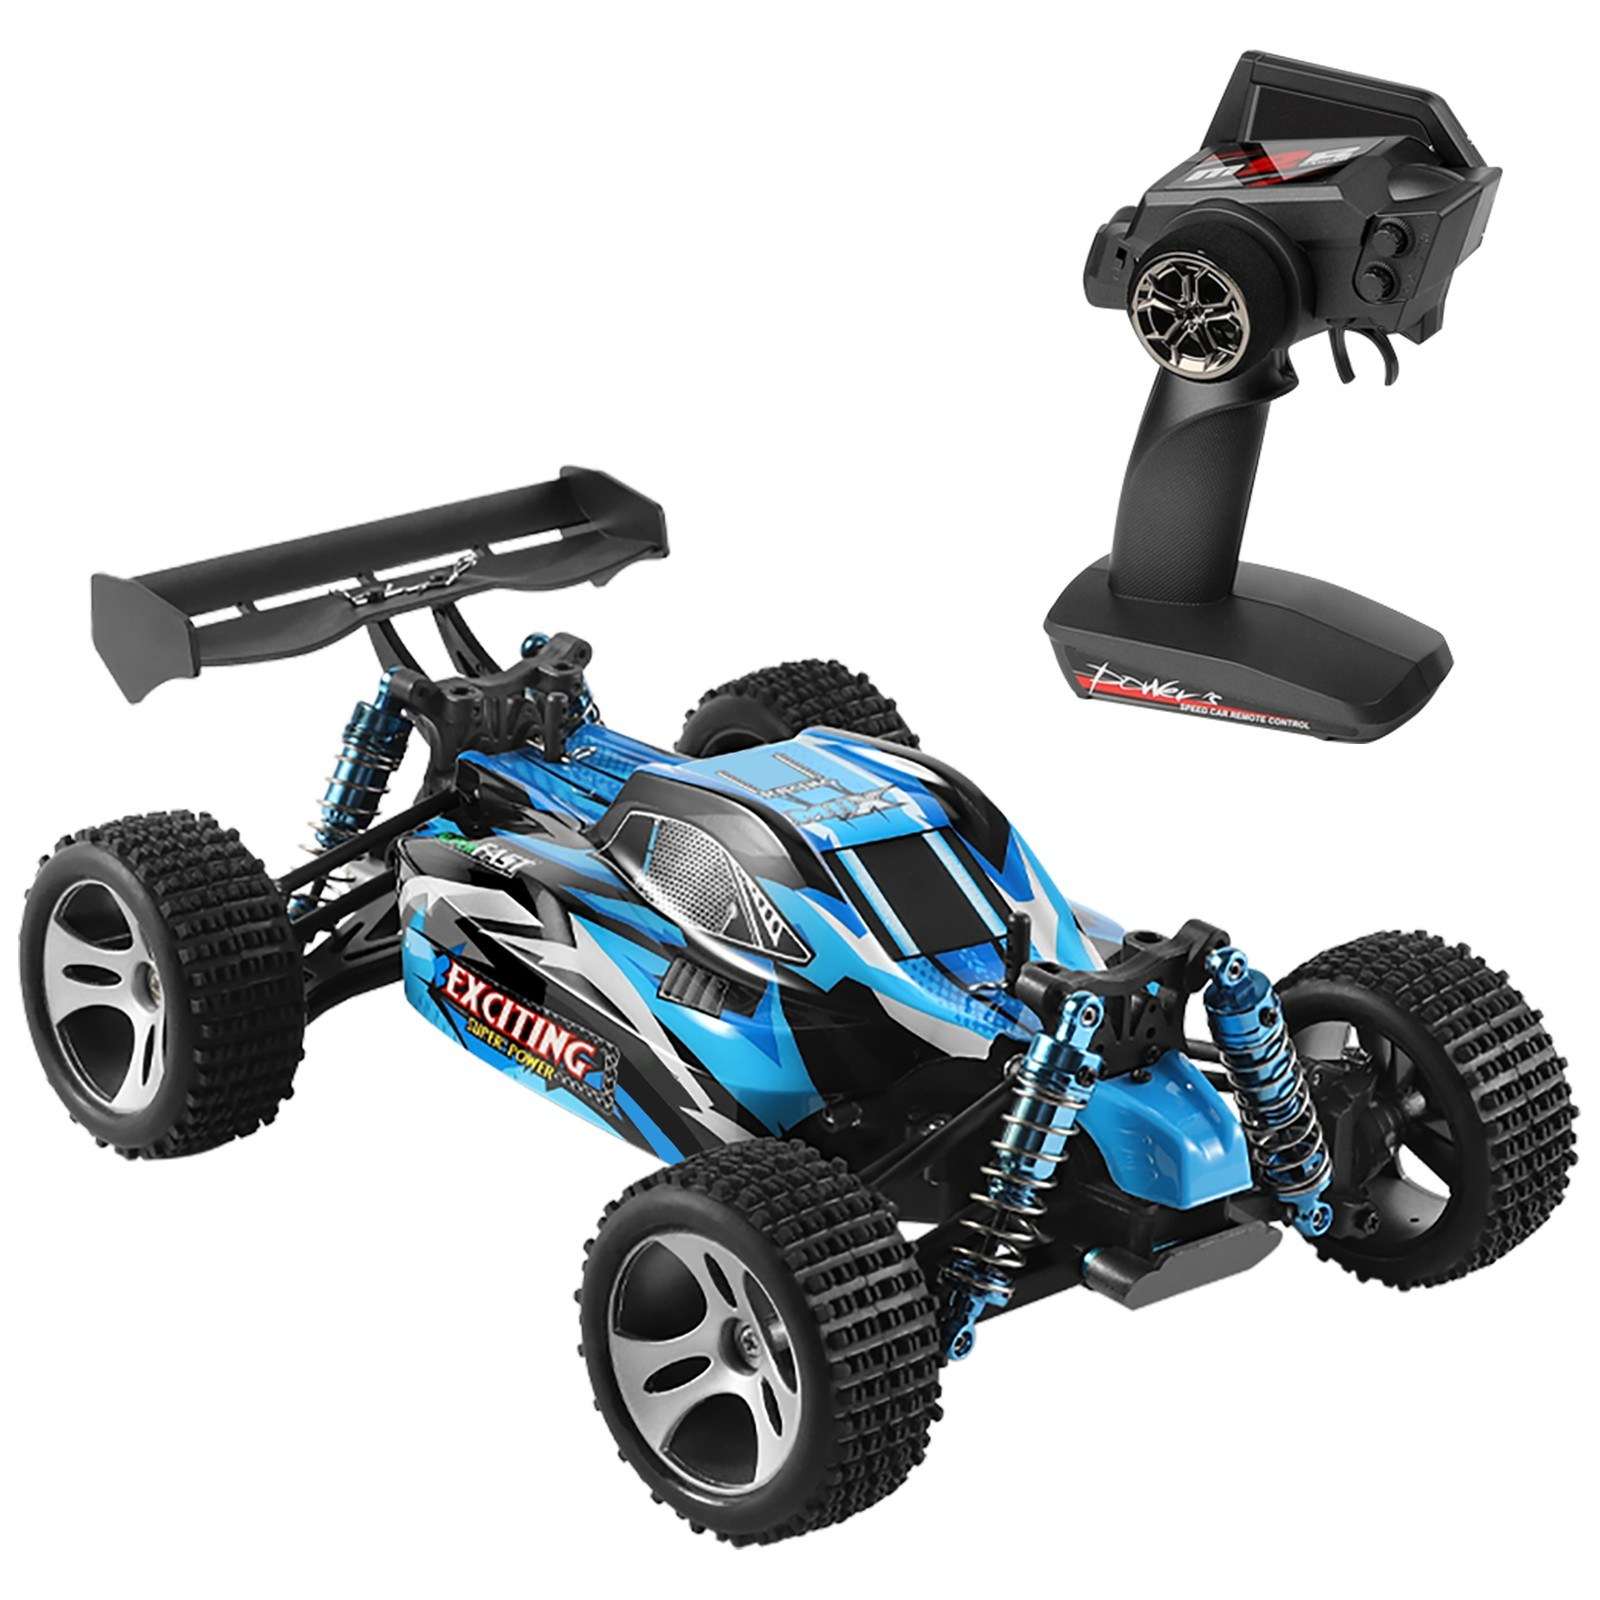 tomtop.com - 60% OFF WLtoys XKS 184011 1/18 2.4GHz 4WD RC Car Off-Road 30km/h Car High Speed RC Crawler, $54.99 (Inclusive of VAT)